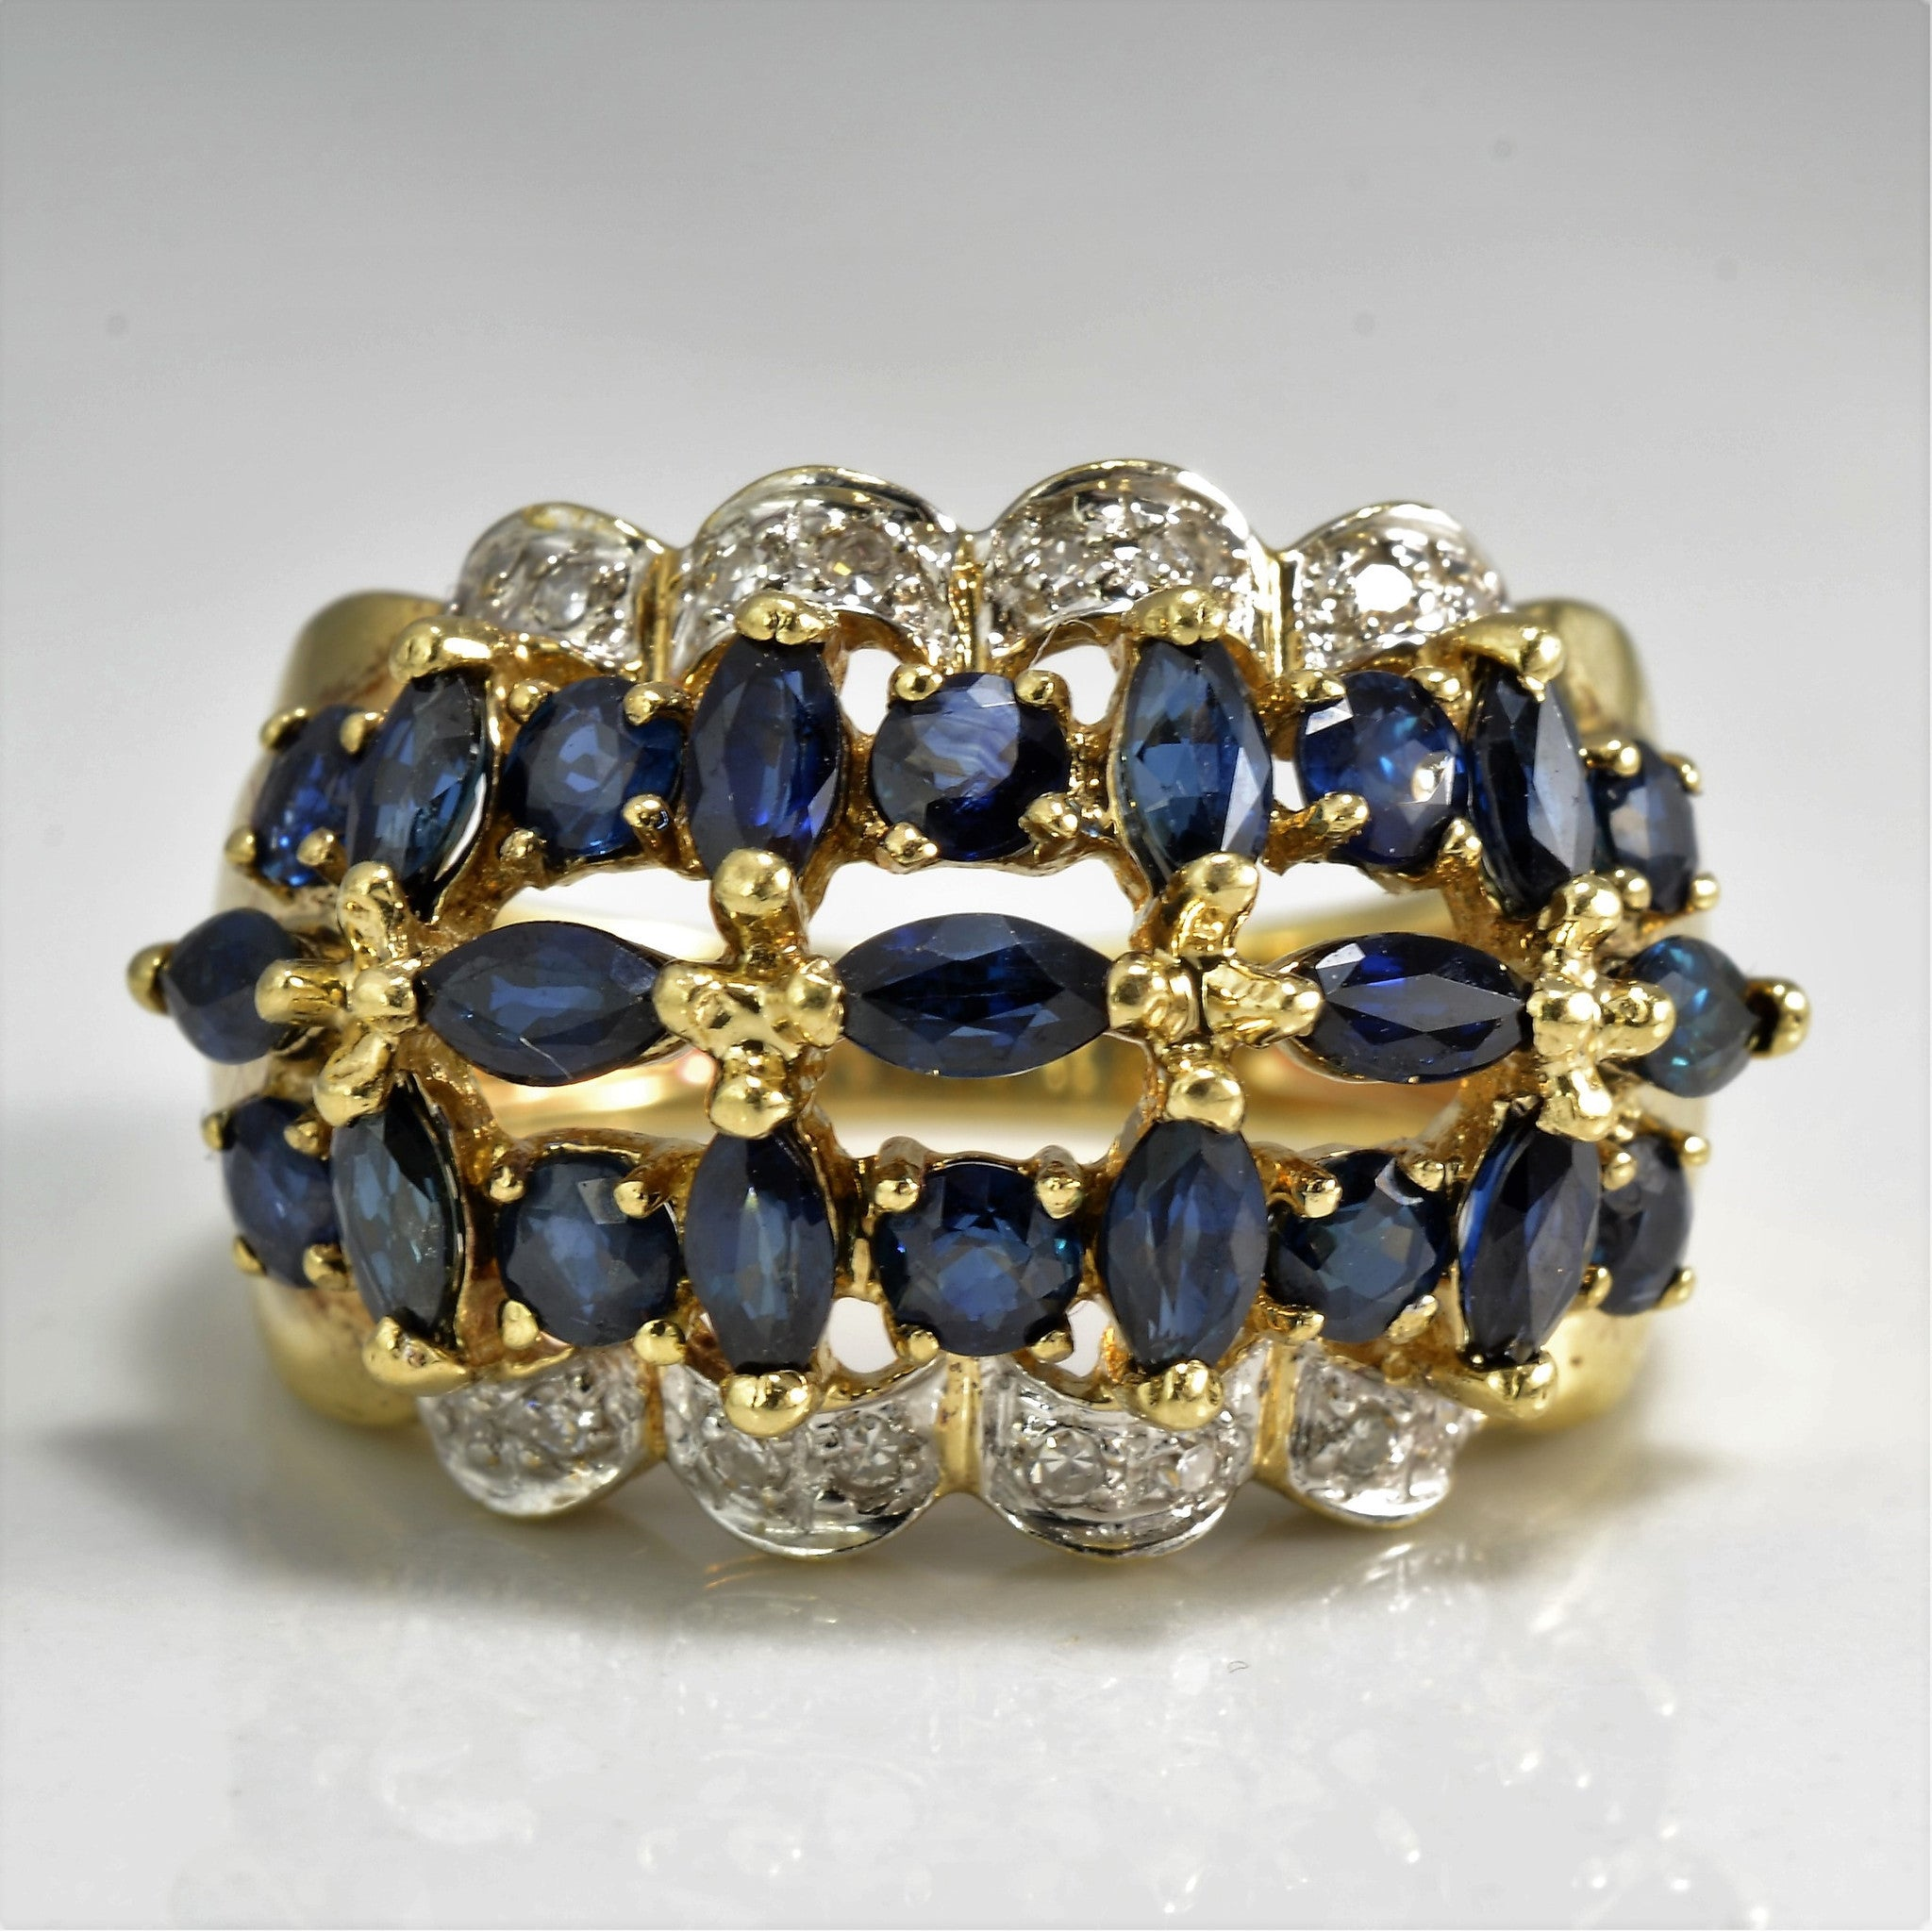 mosseri piece the and marquise abby gold silver shop sapphire jewellery unique in diamond garnered ring product